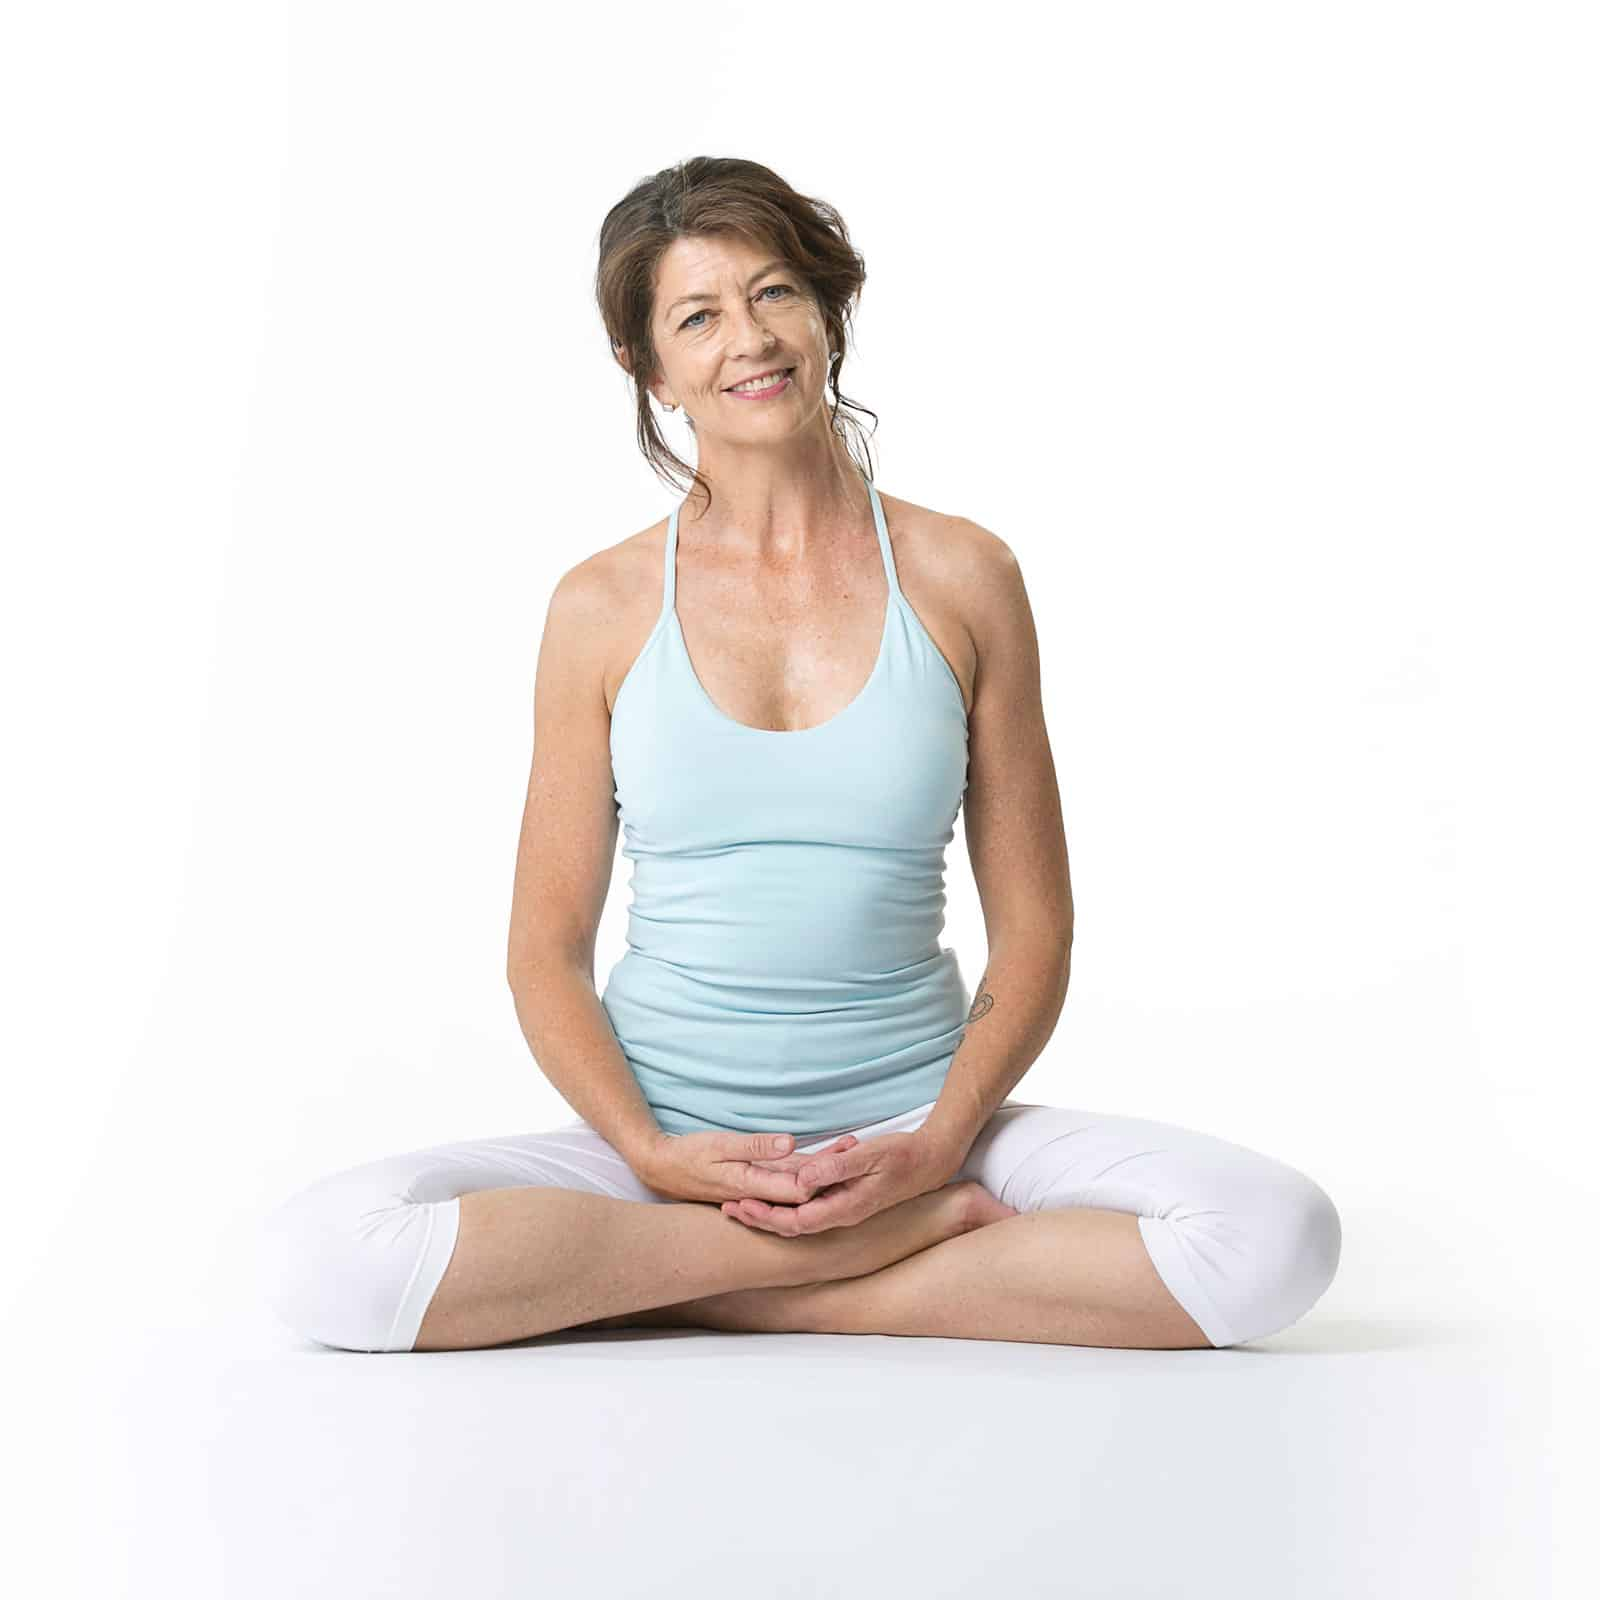 Sue Everett is cross legged in a welcoming yoga pose